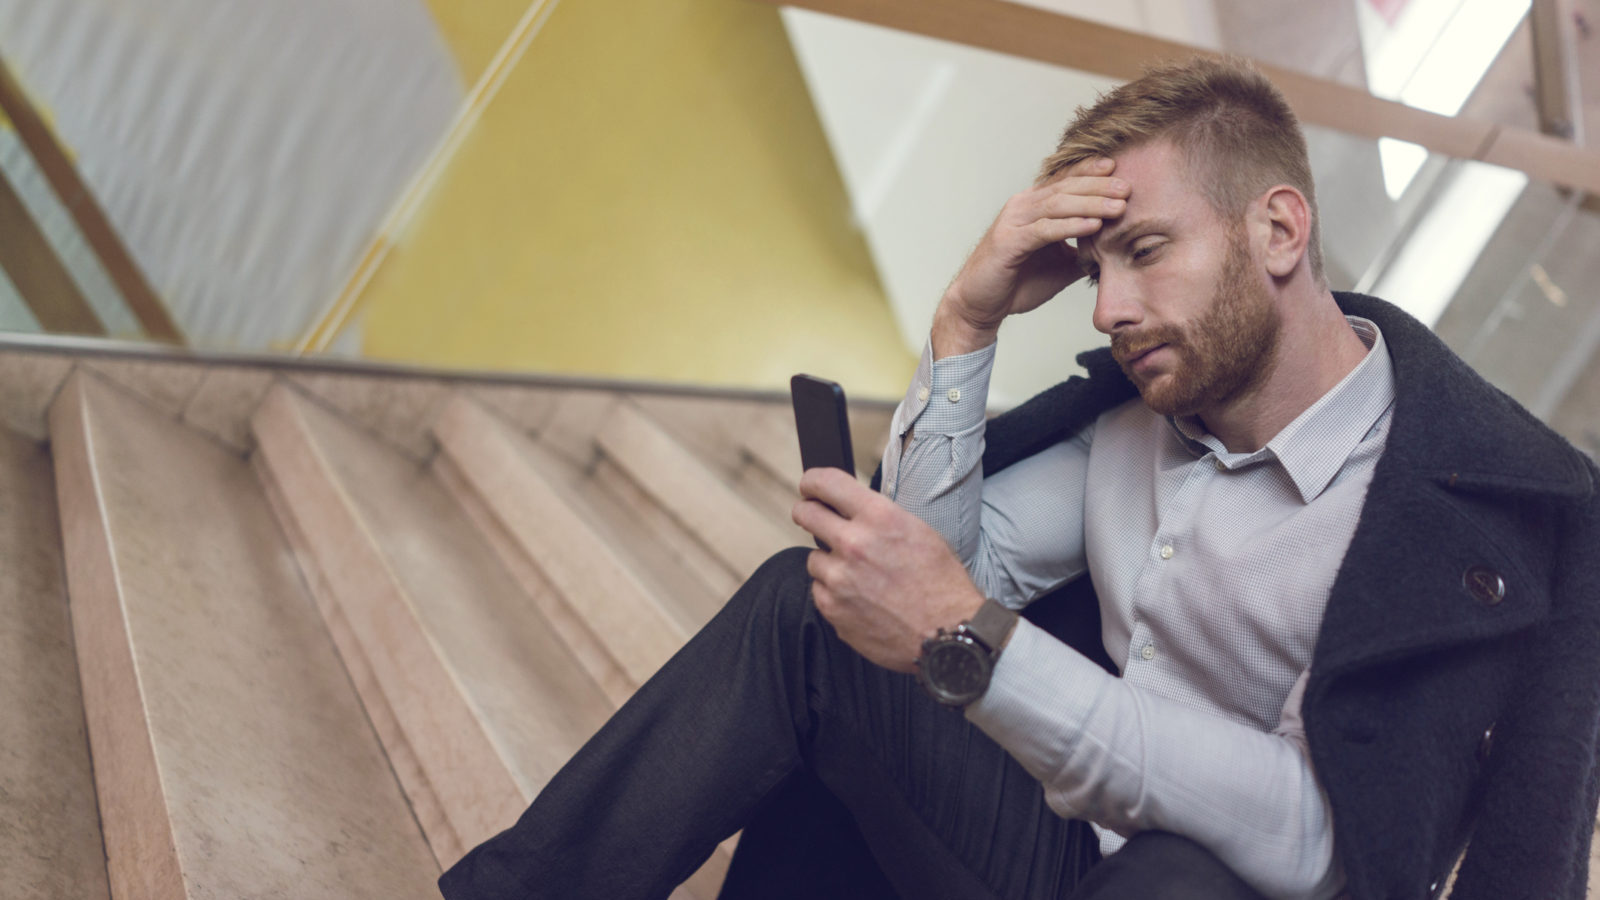 Businessman sitting on a staircase and using mobile phone while having a headache.